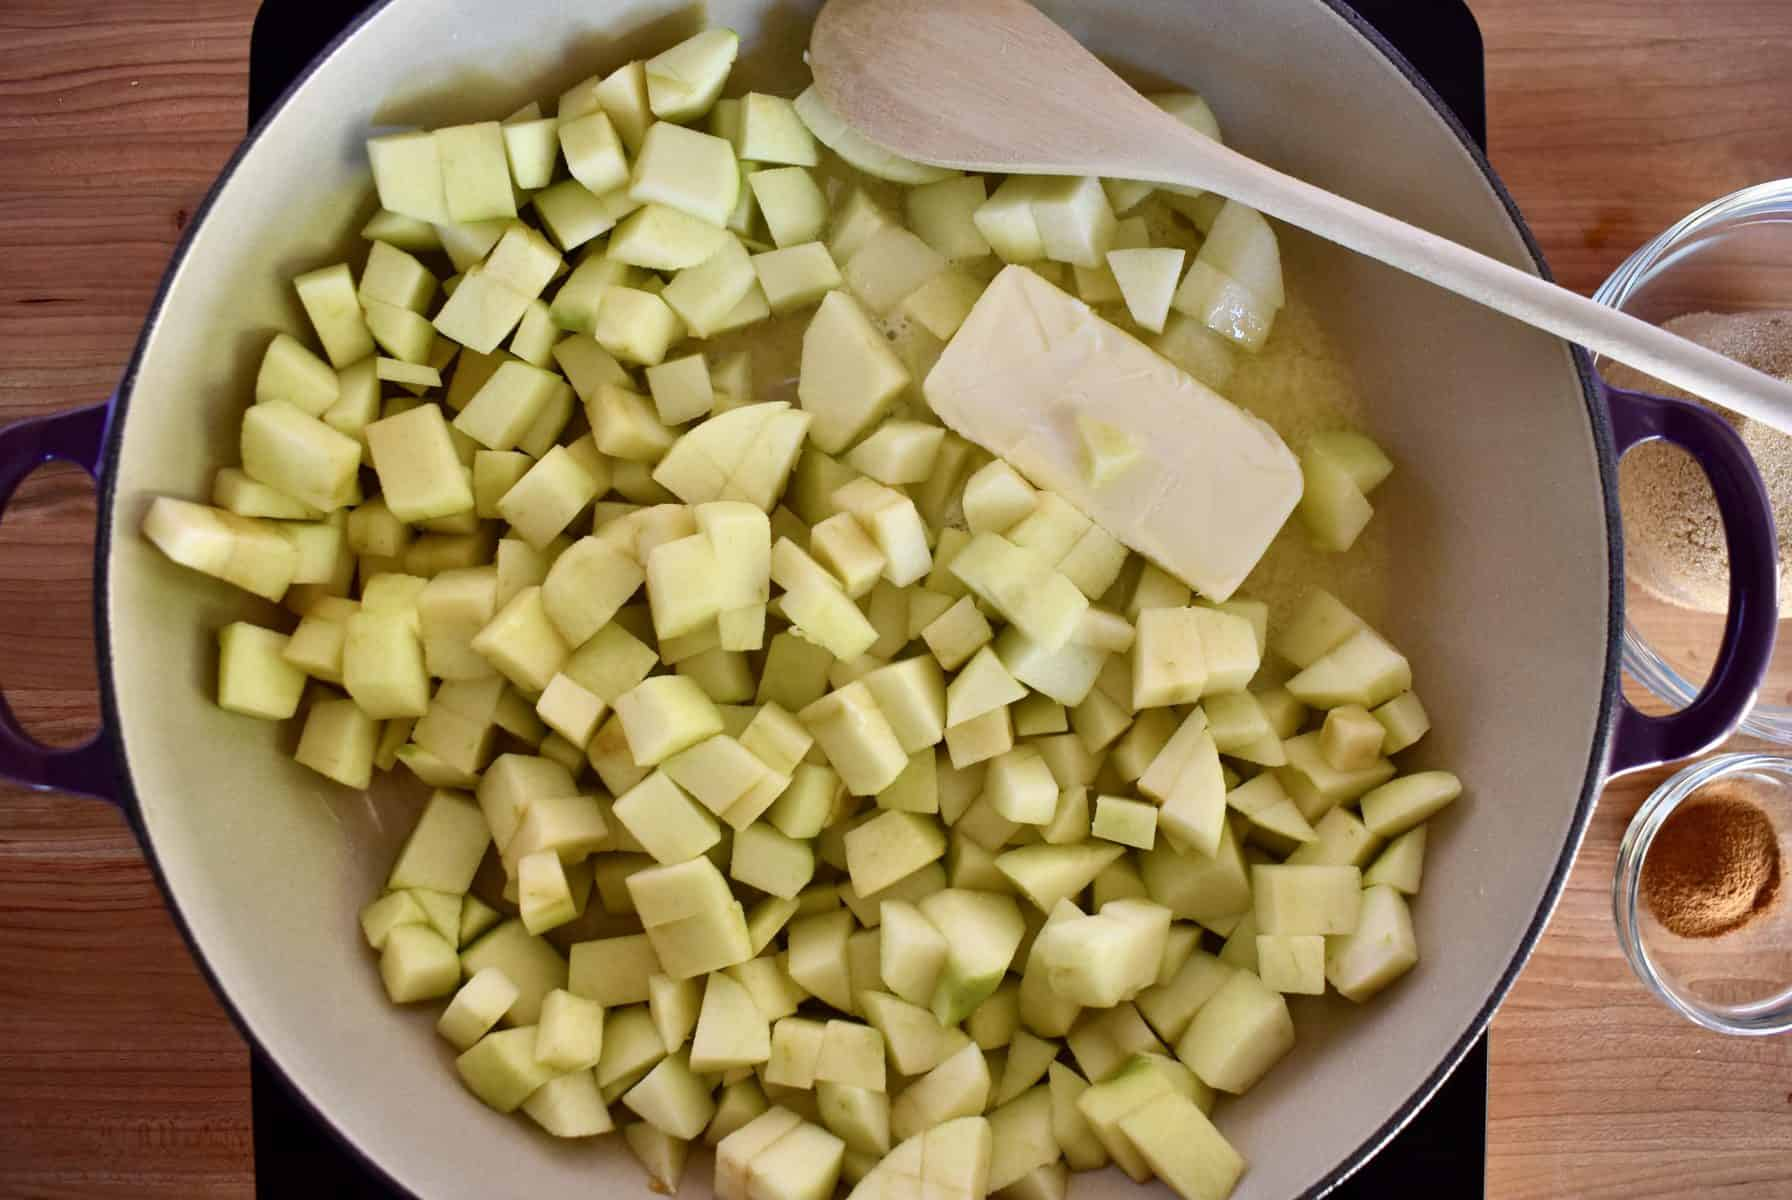 apples in a skillet with a stick of butter and a wooden spoon.